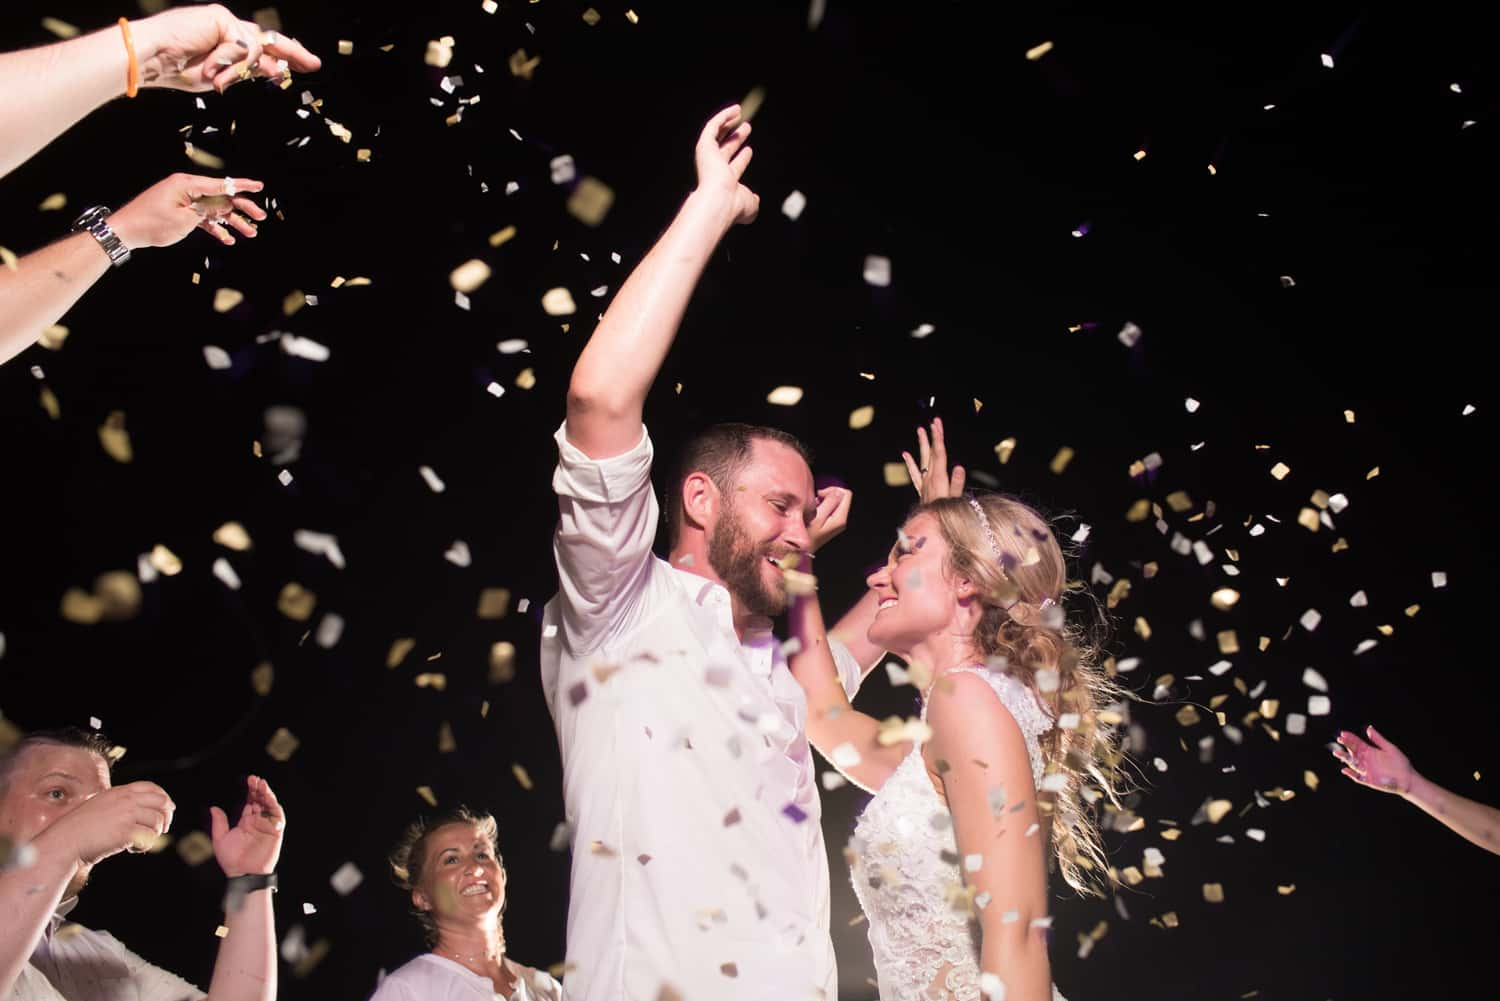 Bride and groom dancing with confetti during wedding reception